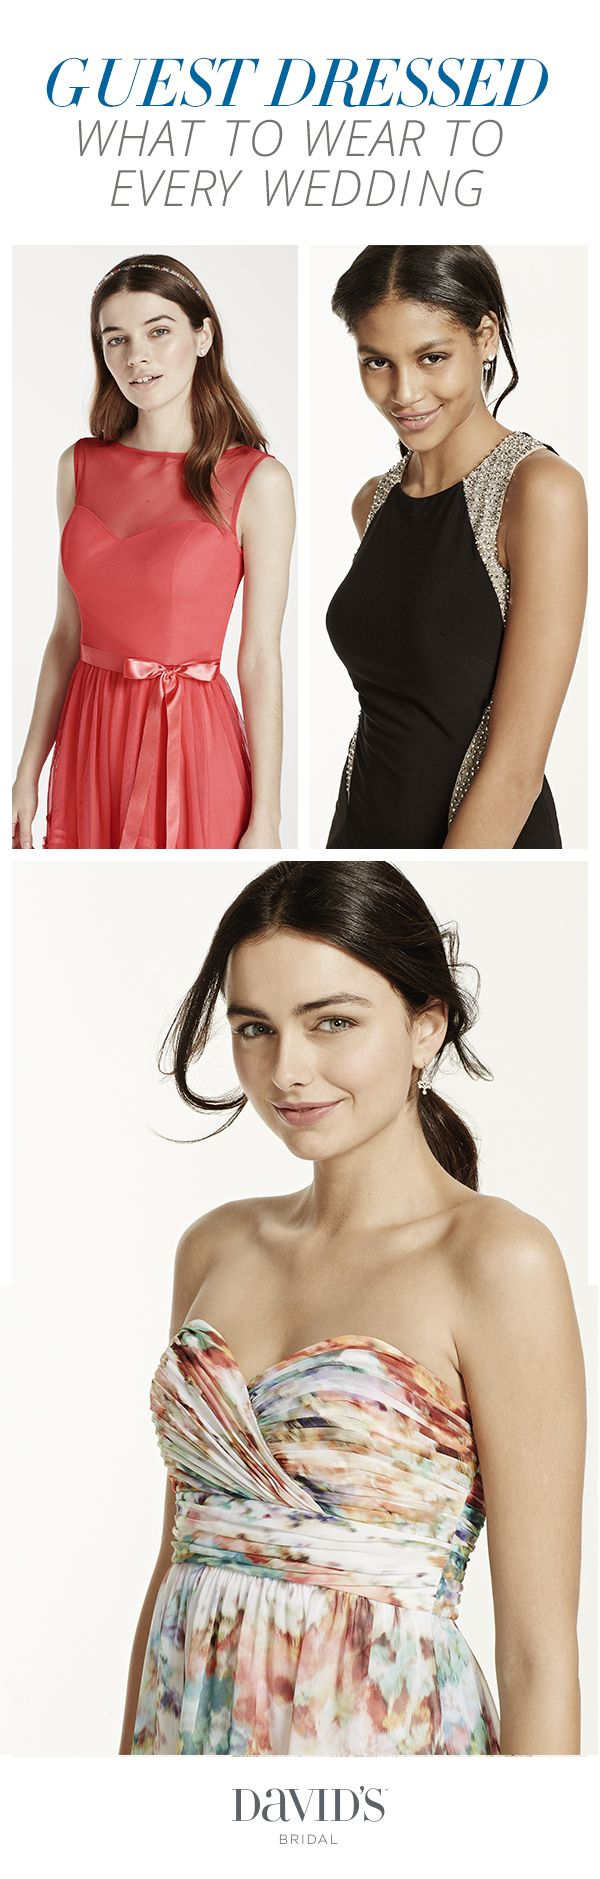 asics store locator australia Play dress up in the season  39 s hottest styles for every celebration